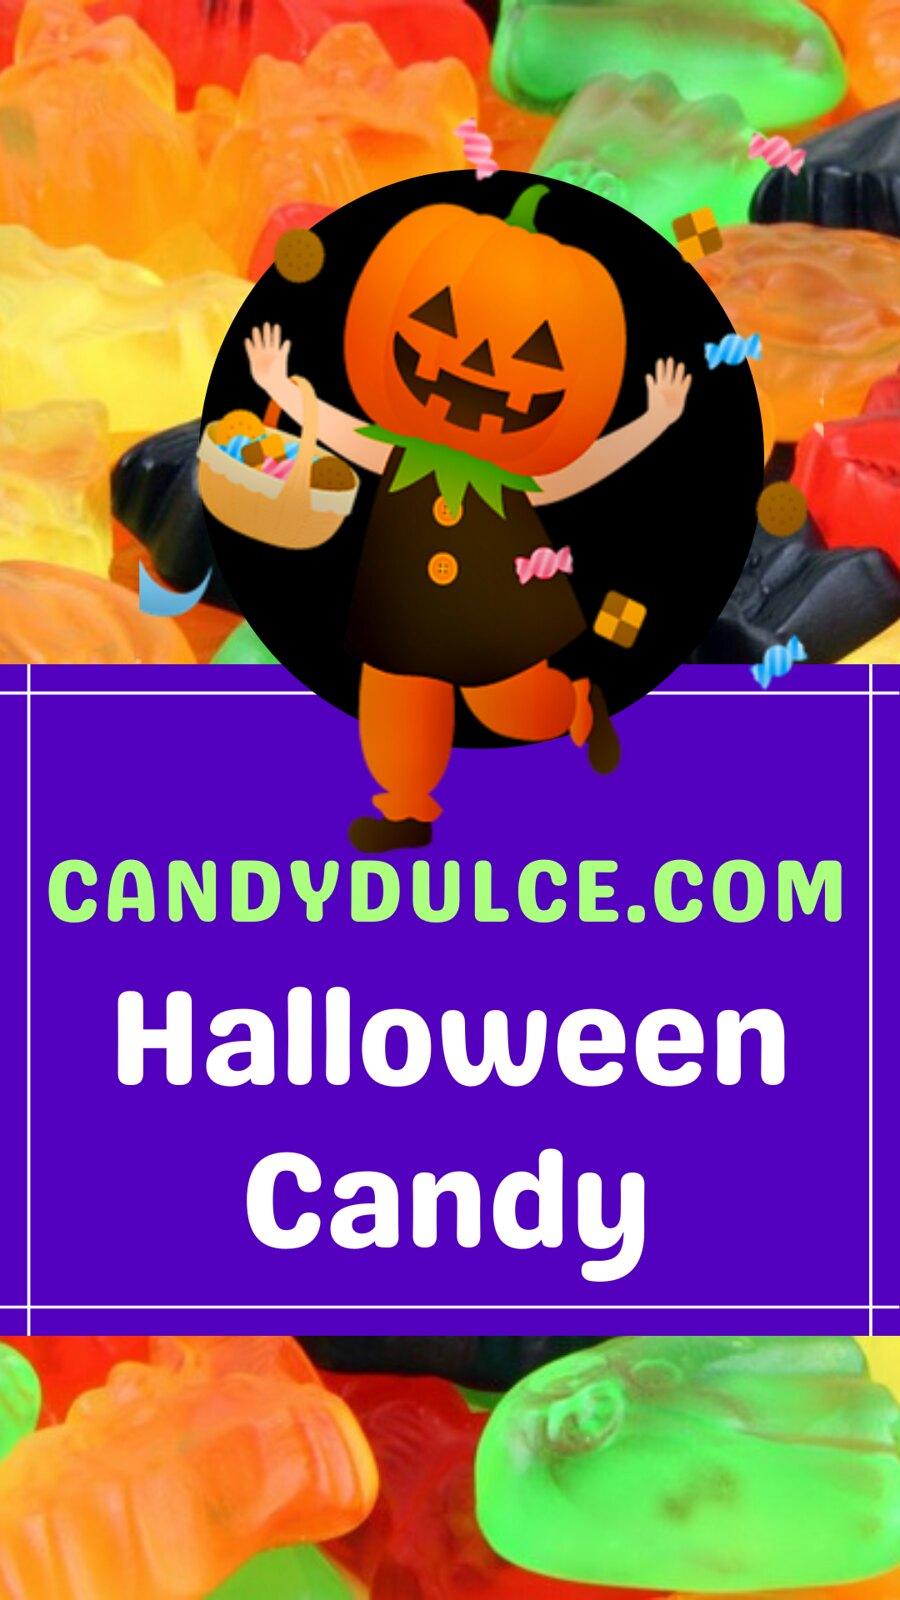 Halloween Candy at CandyDulce.com